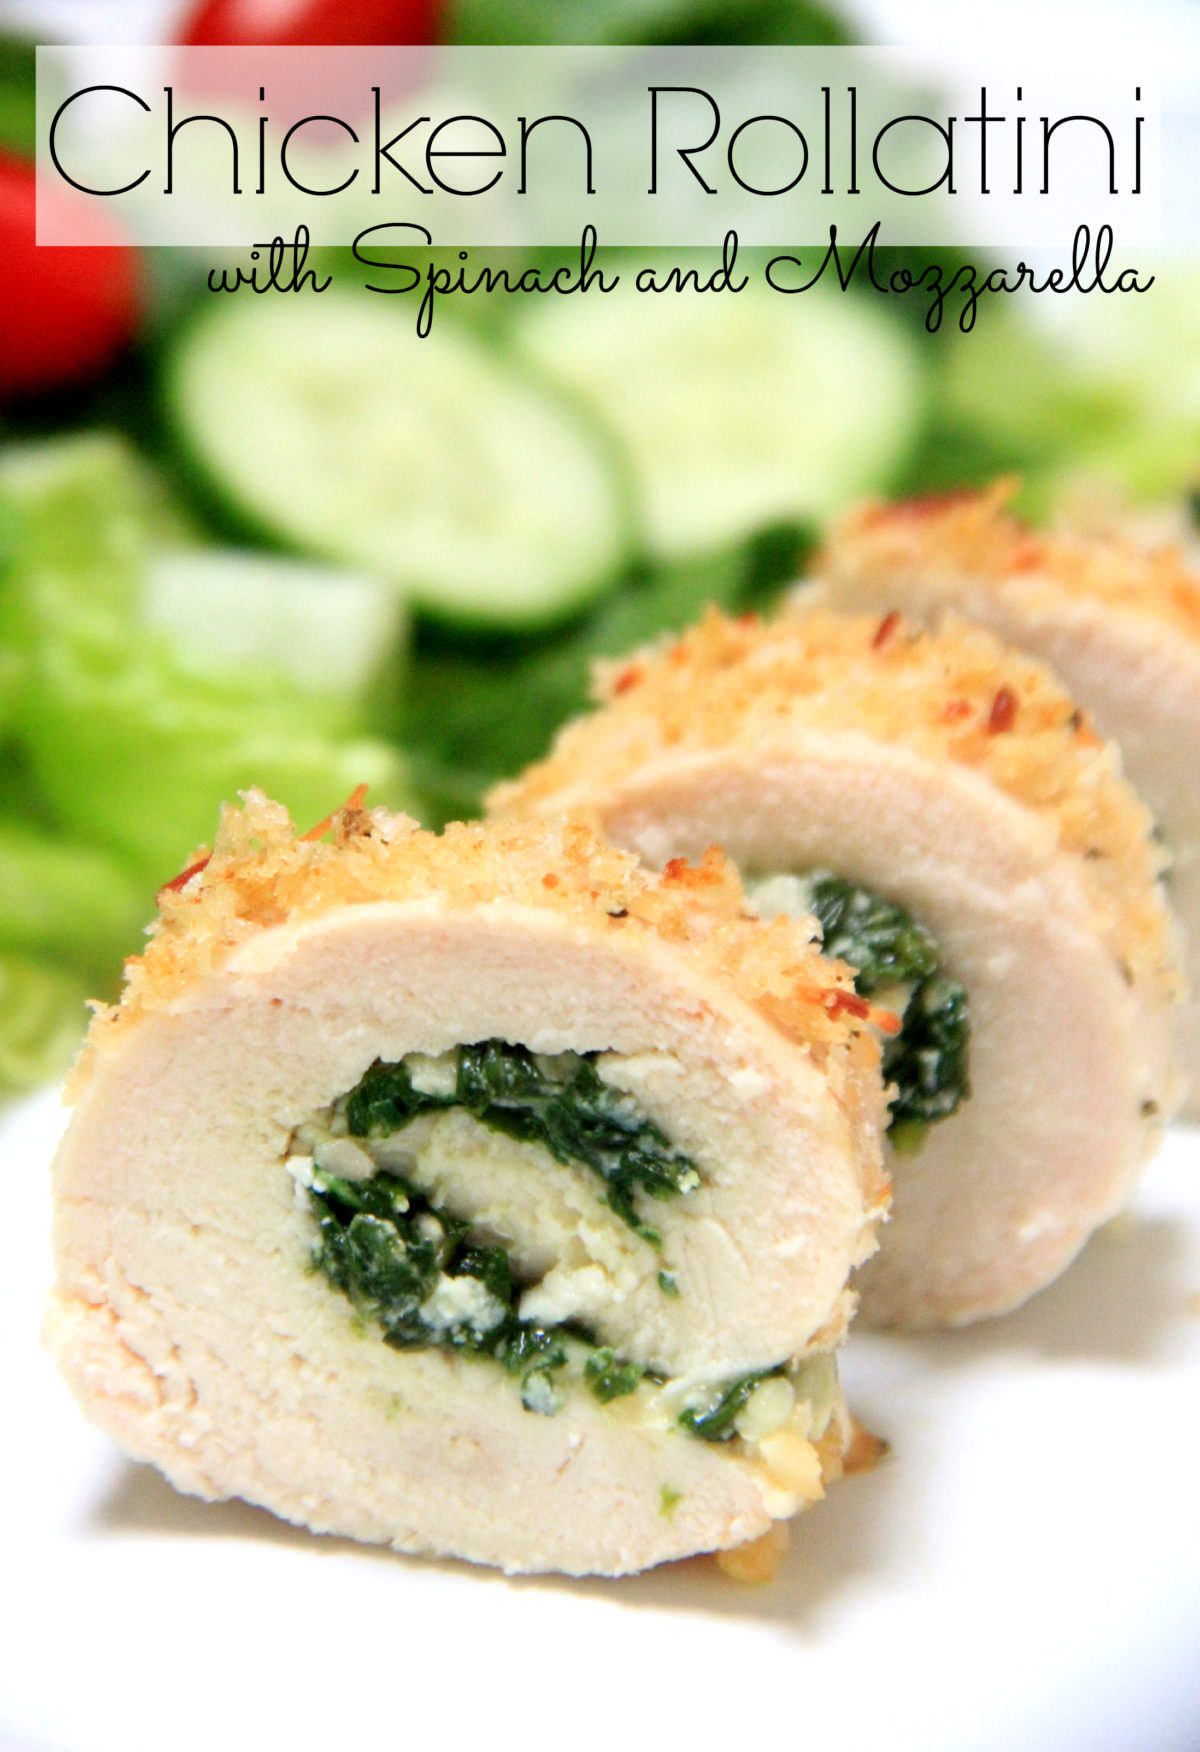 Roll up that boring chicken breast with spinach and mozzarella cheese to make this chicken rollatini masterpiece. High in protein and easy to make Keto friendly! via @mymommystyle